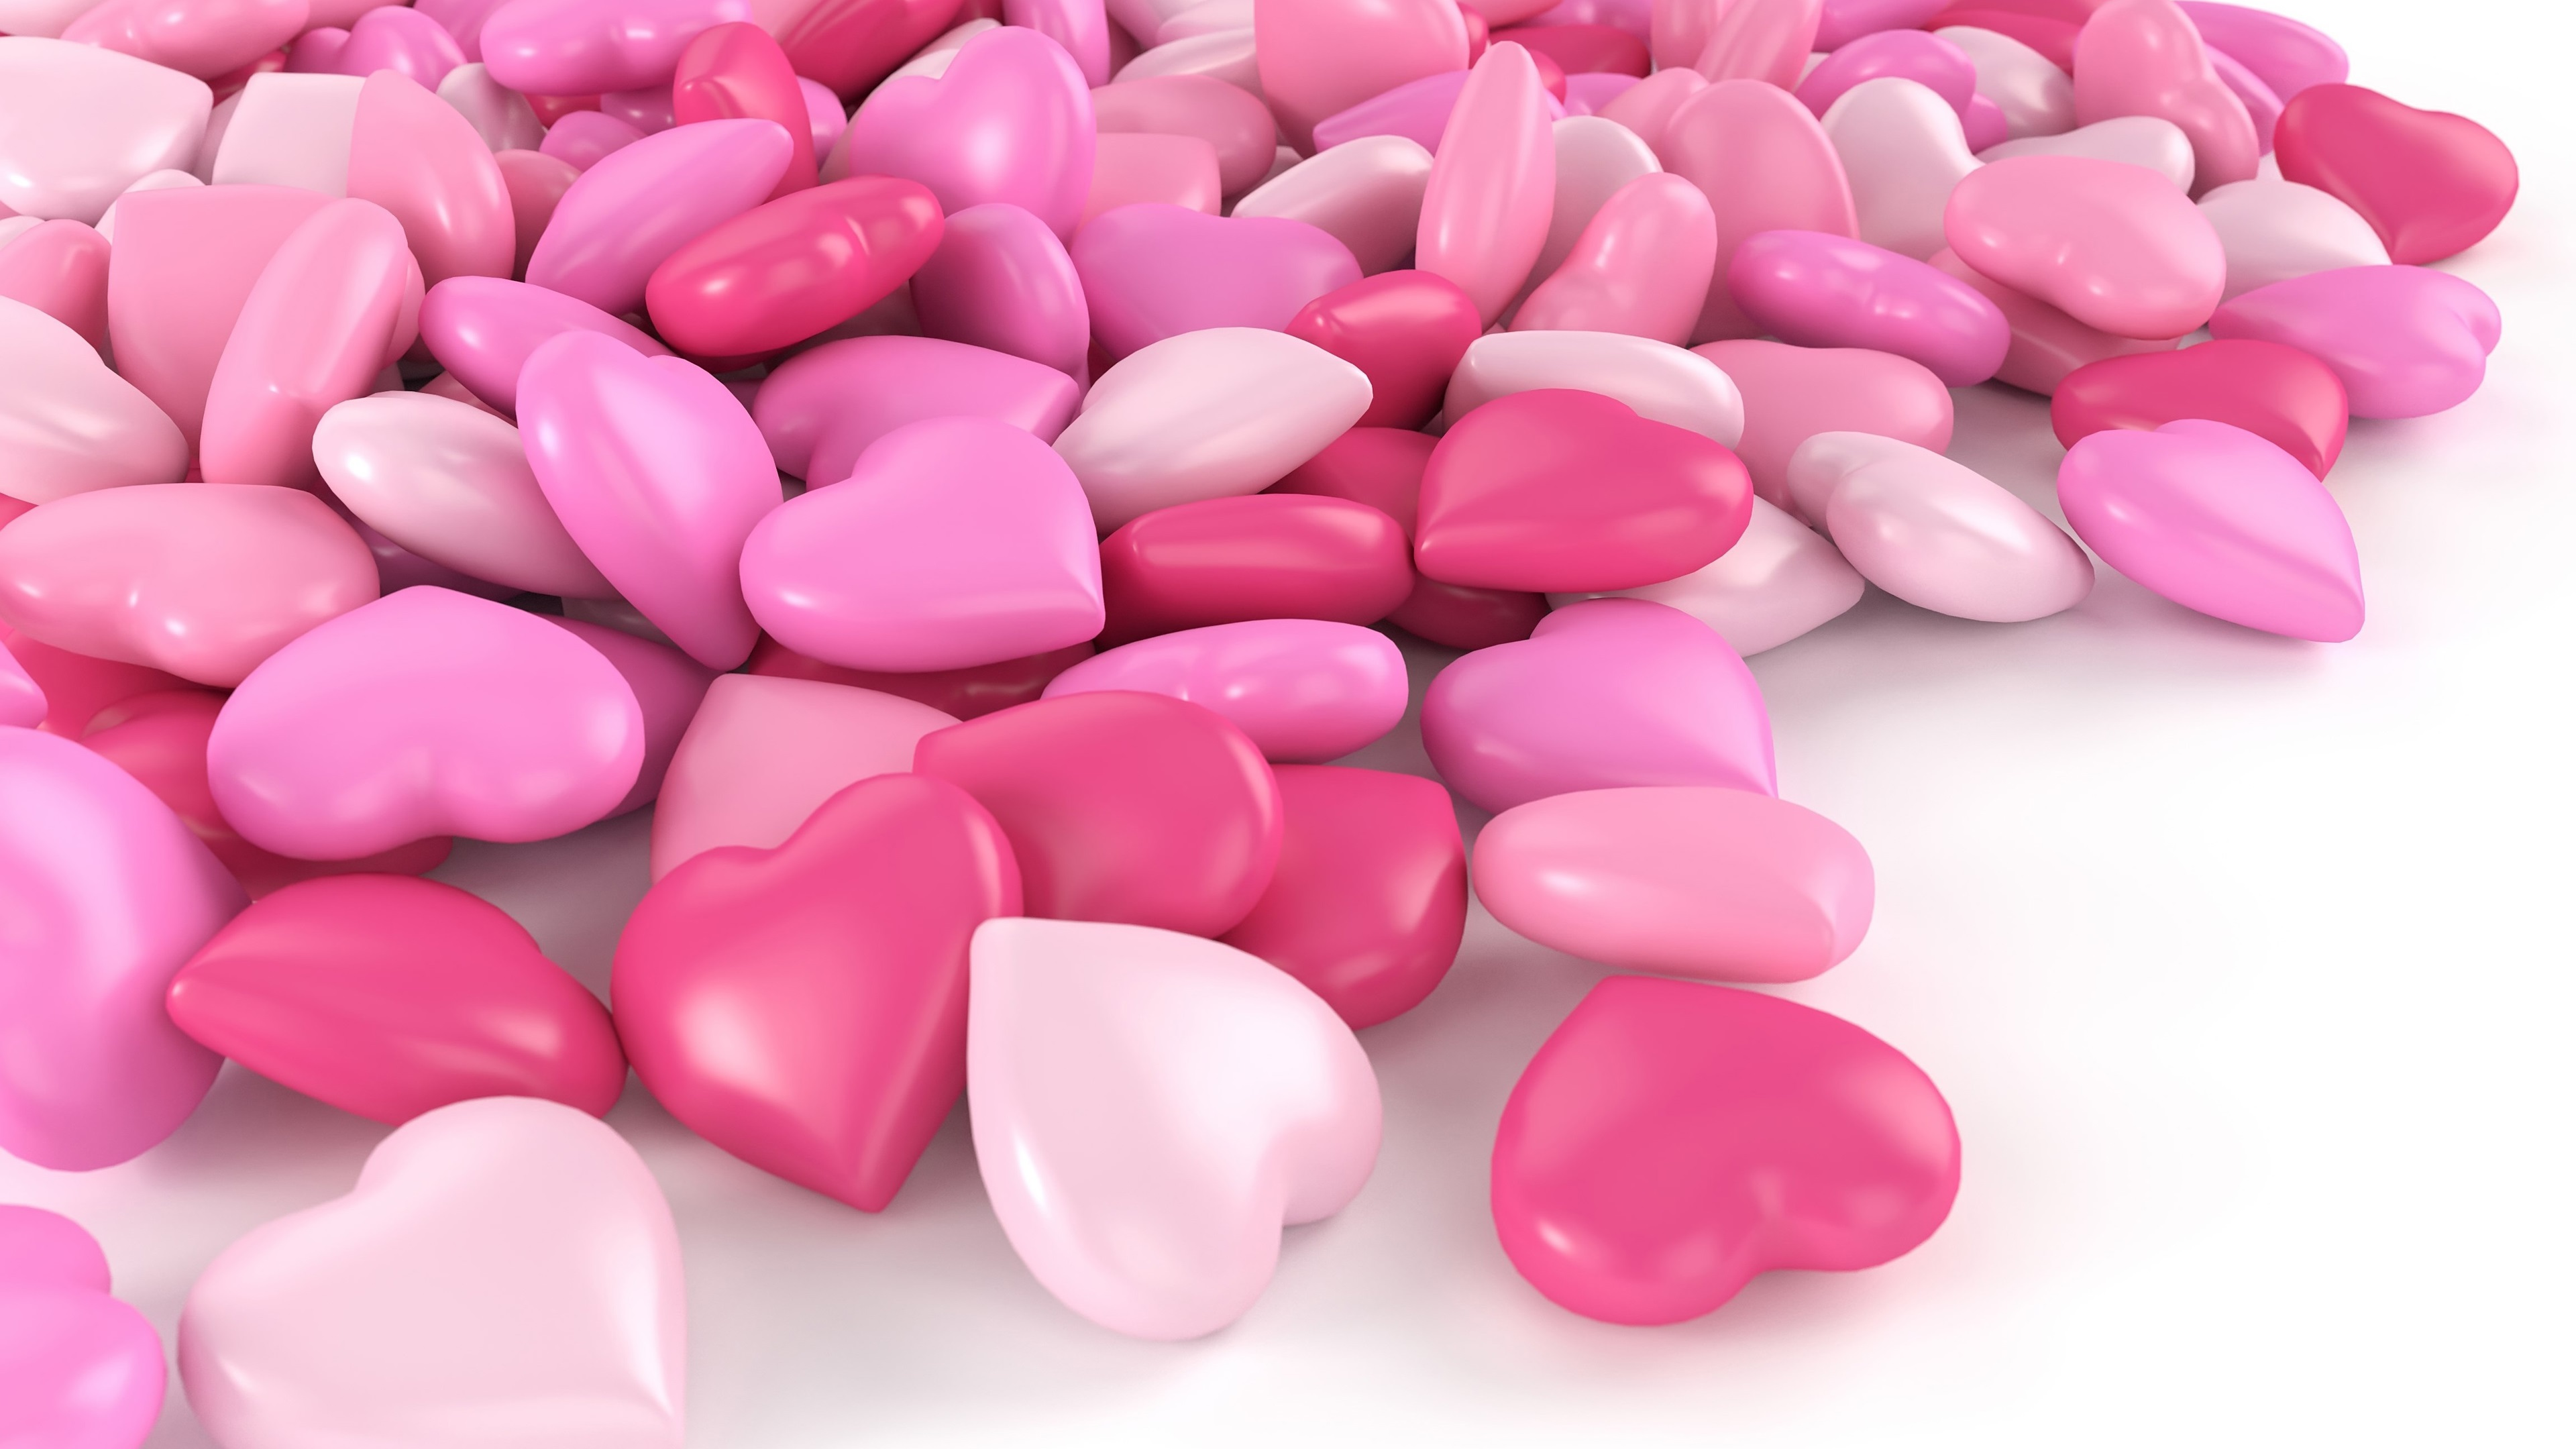 wallpaper pink love heart candy 3840x2160 uhd 4k picture, image